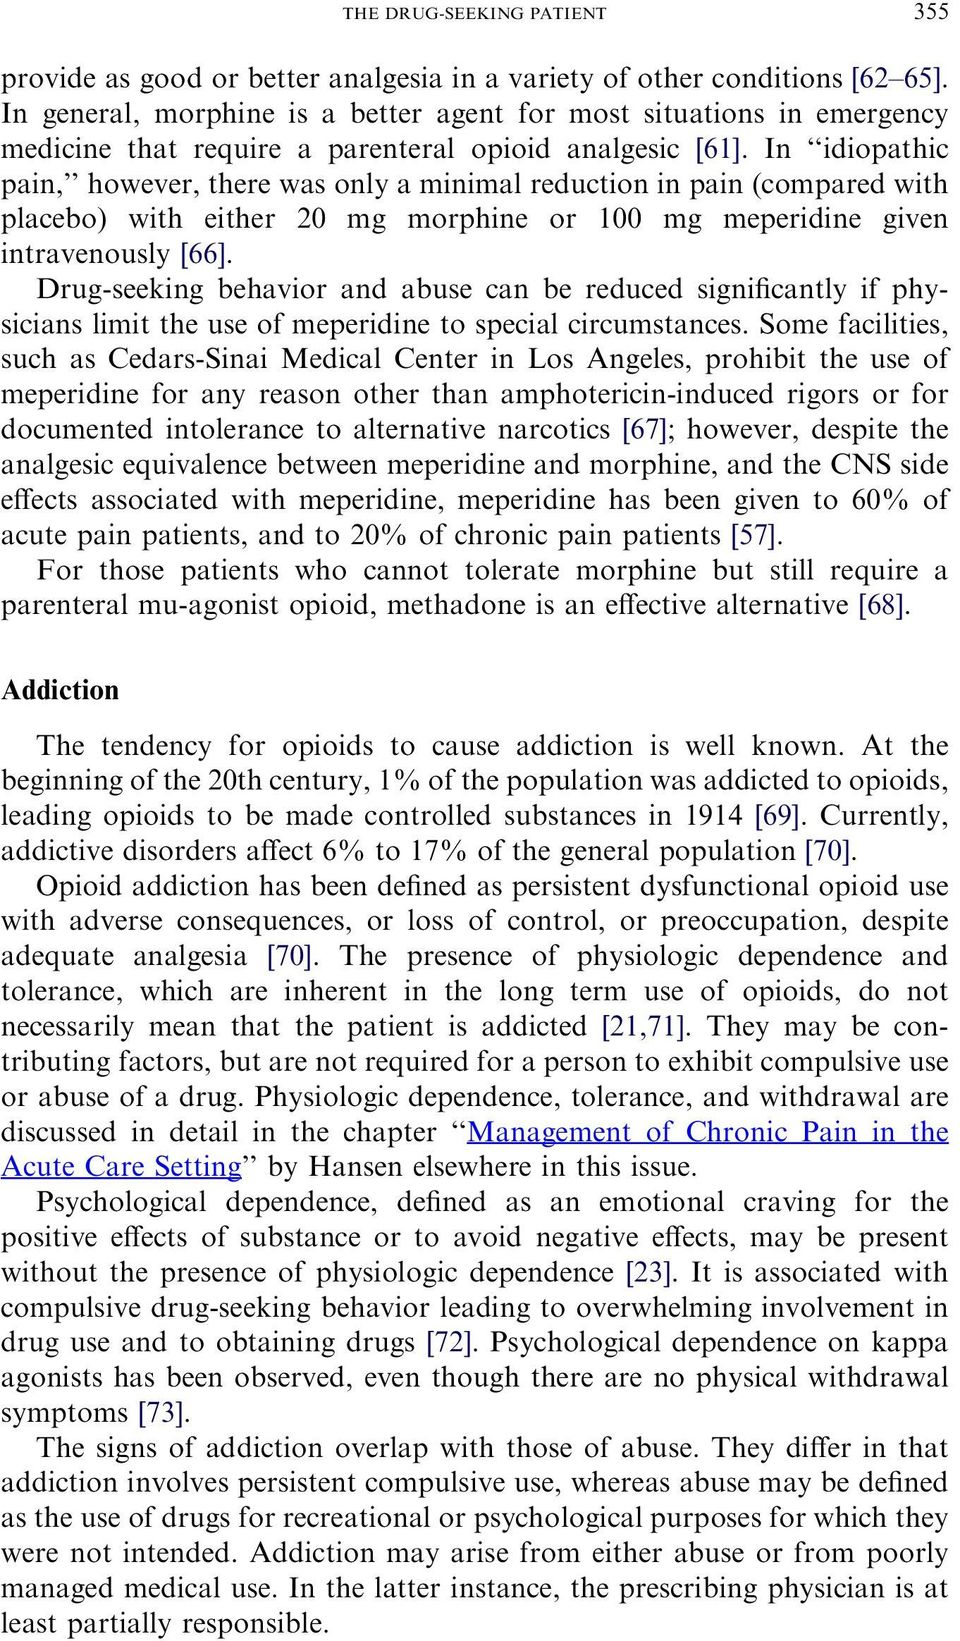 In idiopathic pain, however, there was only a minimal reduction in pain (compared with placebo) with either 20 mg morphine or 100 mg meperidine given intravenously [66].